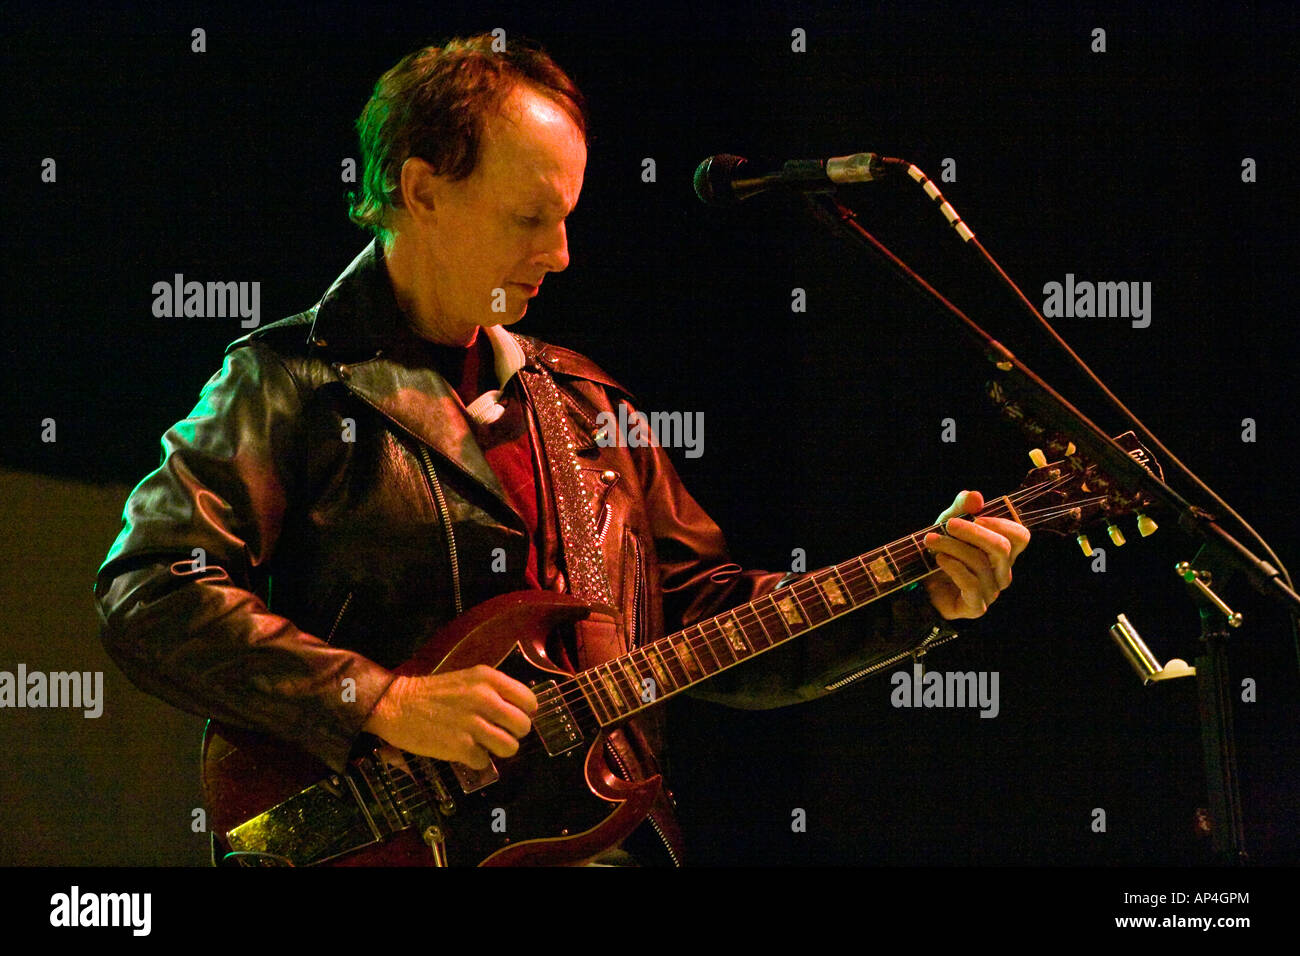 Robbie Krieger For Riders Of The Storm The Doors Latest Incarnation